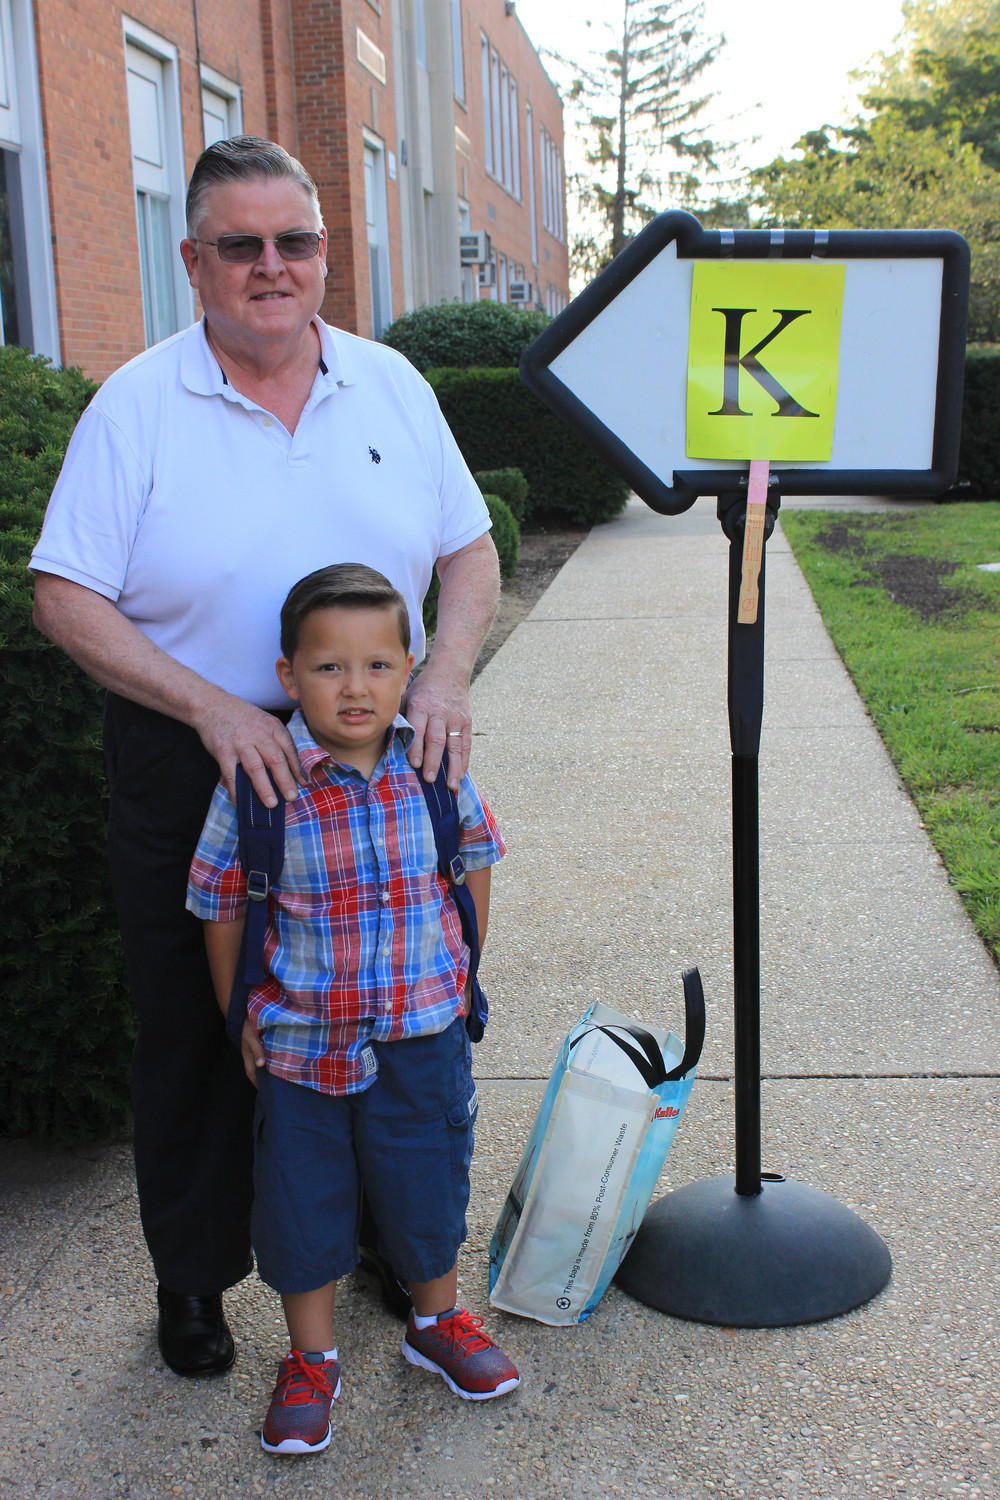 Mason Otero waited with his grandfather, Bill Gannon, to enter his kindergarten classroom and meet his new teacher.